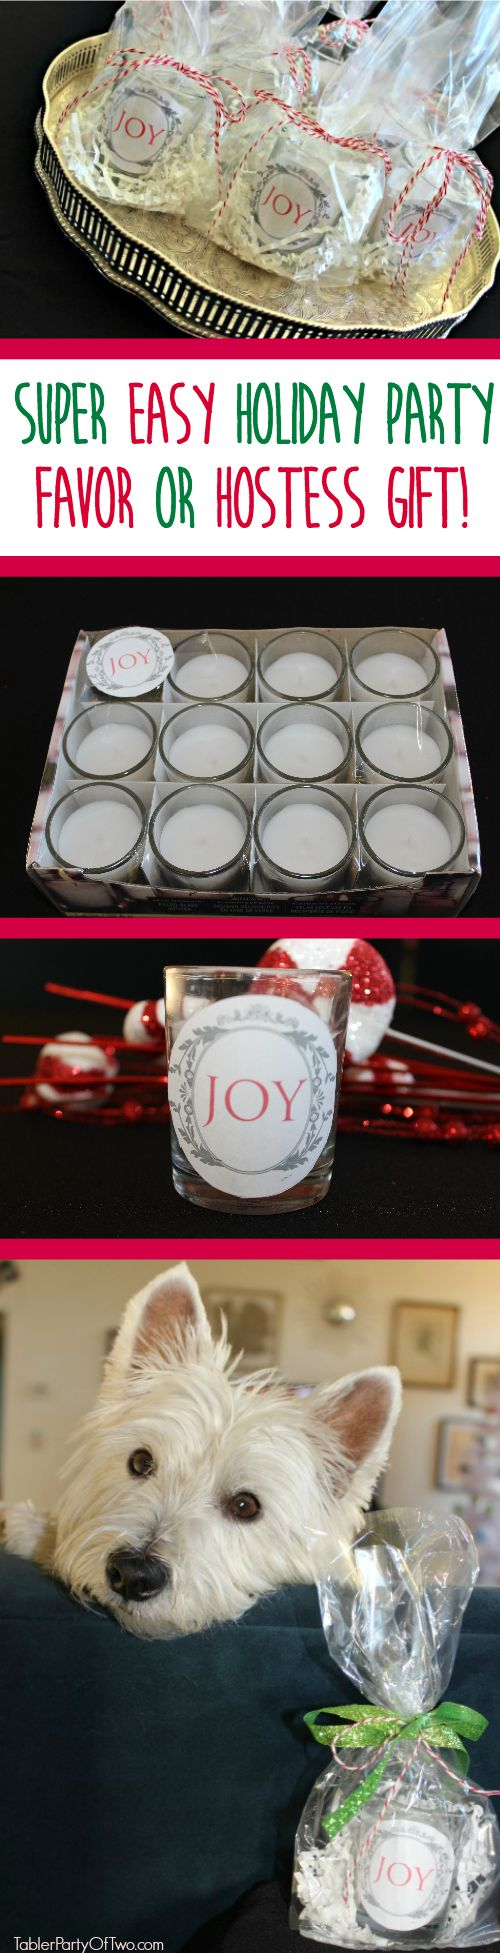 Christmas Diy Favors And Hostess Gifts On Pinterest